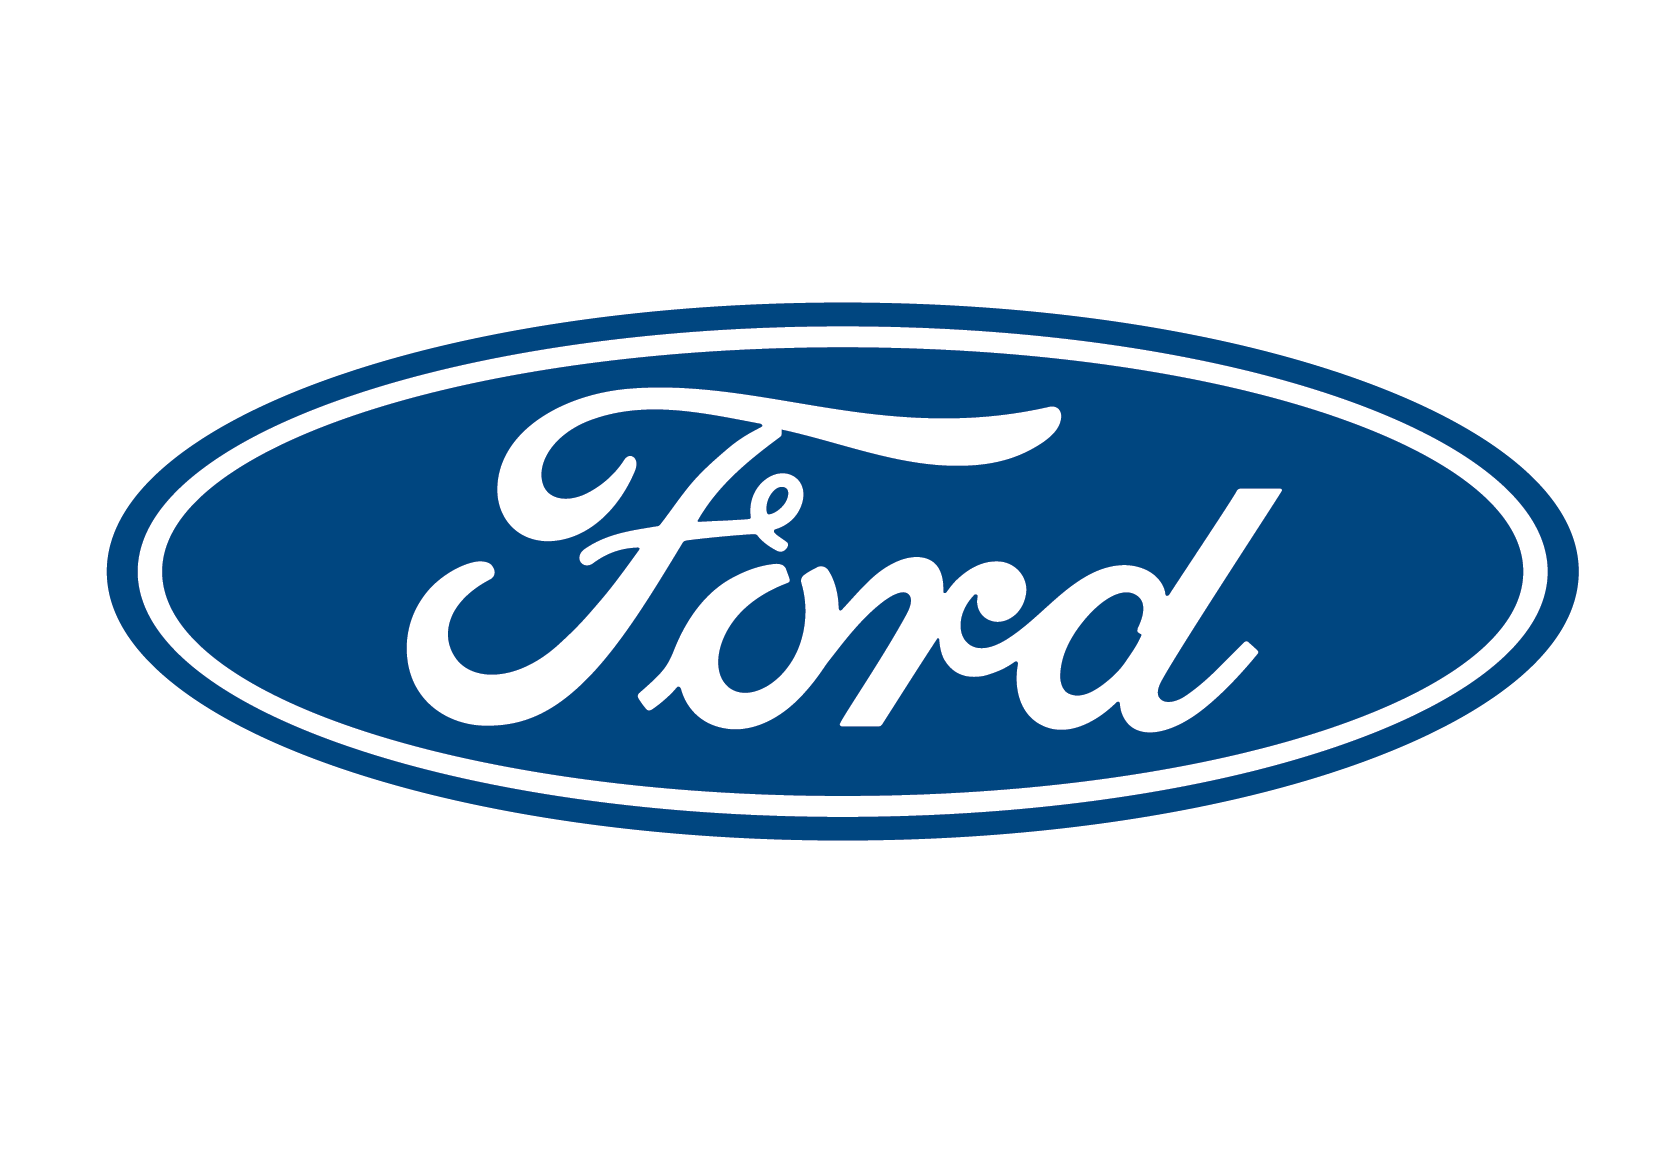 Ford - EWC 2019- Global Goals Sponsor